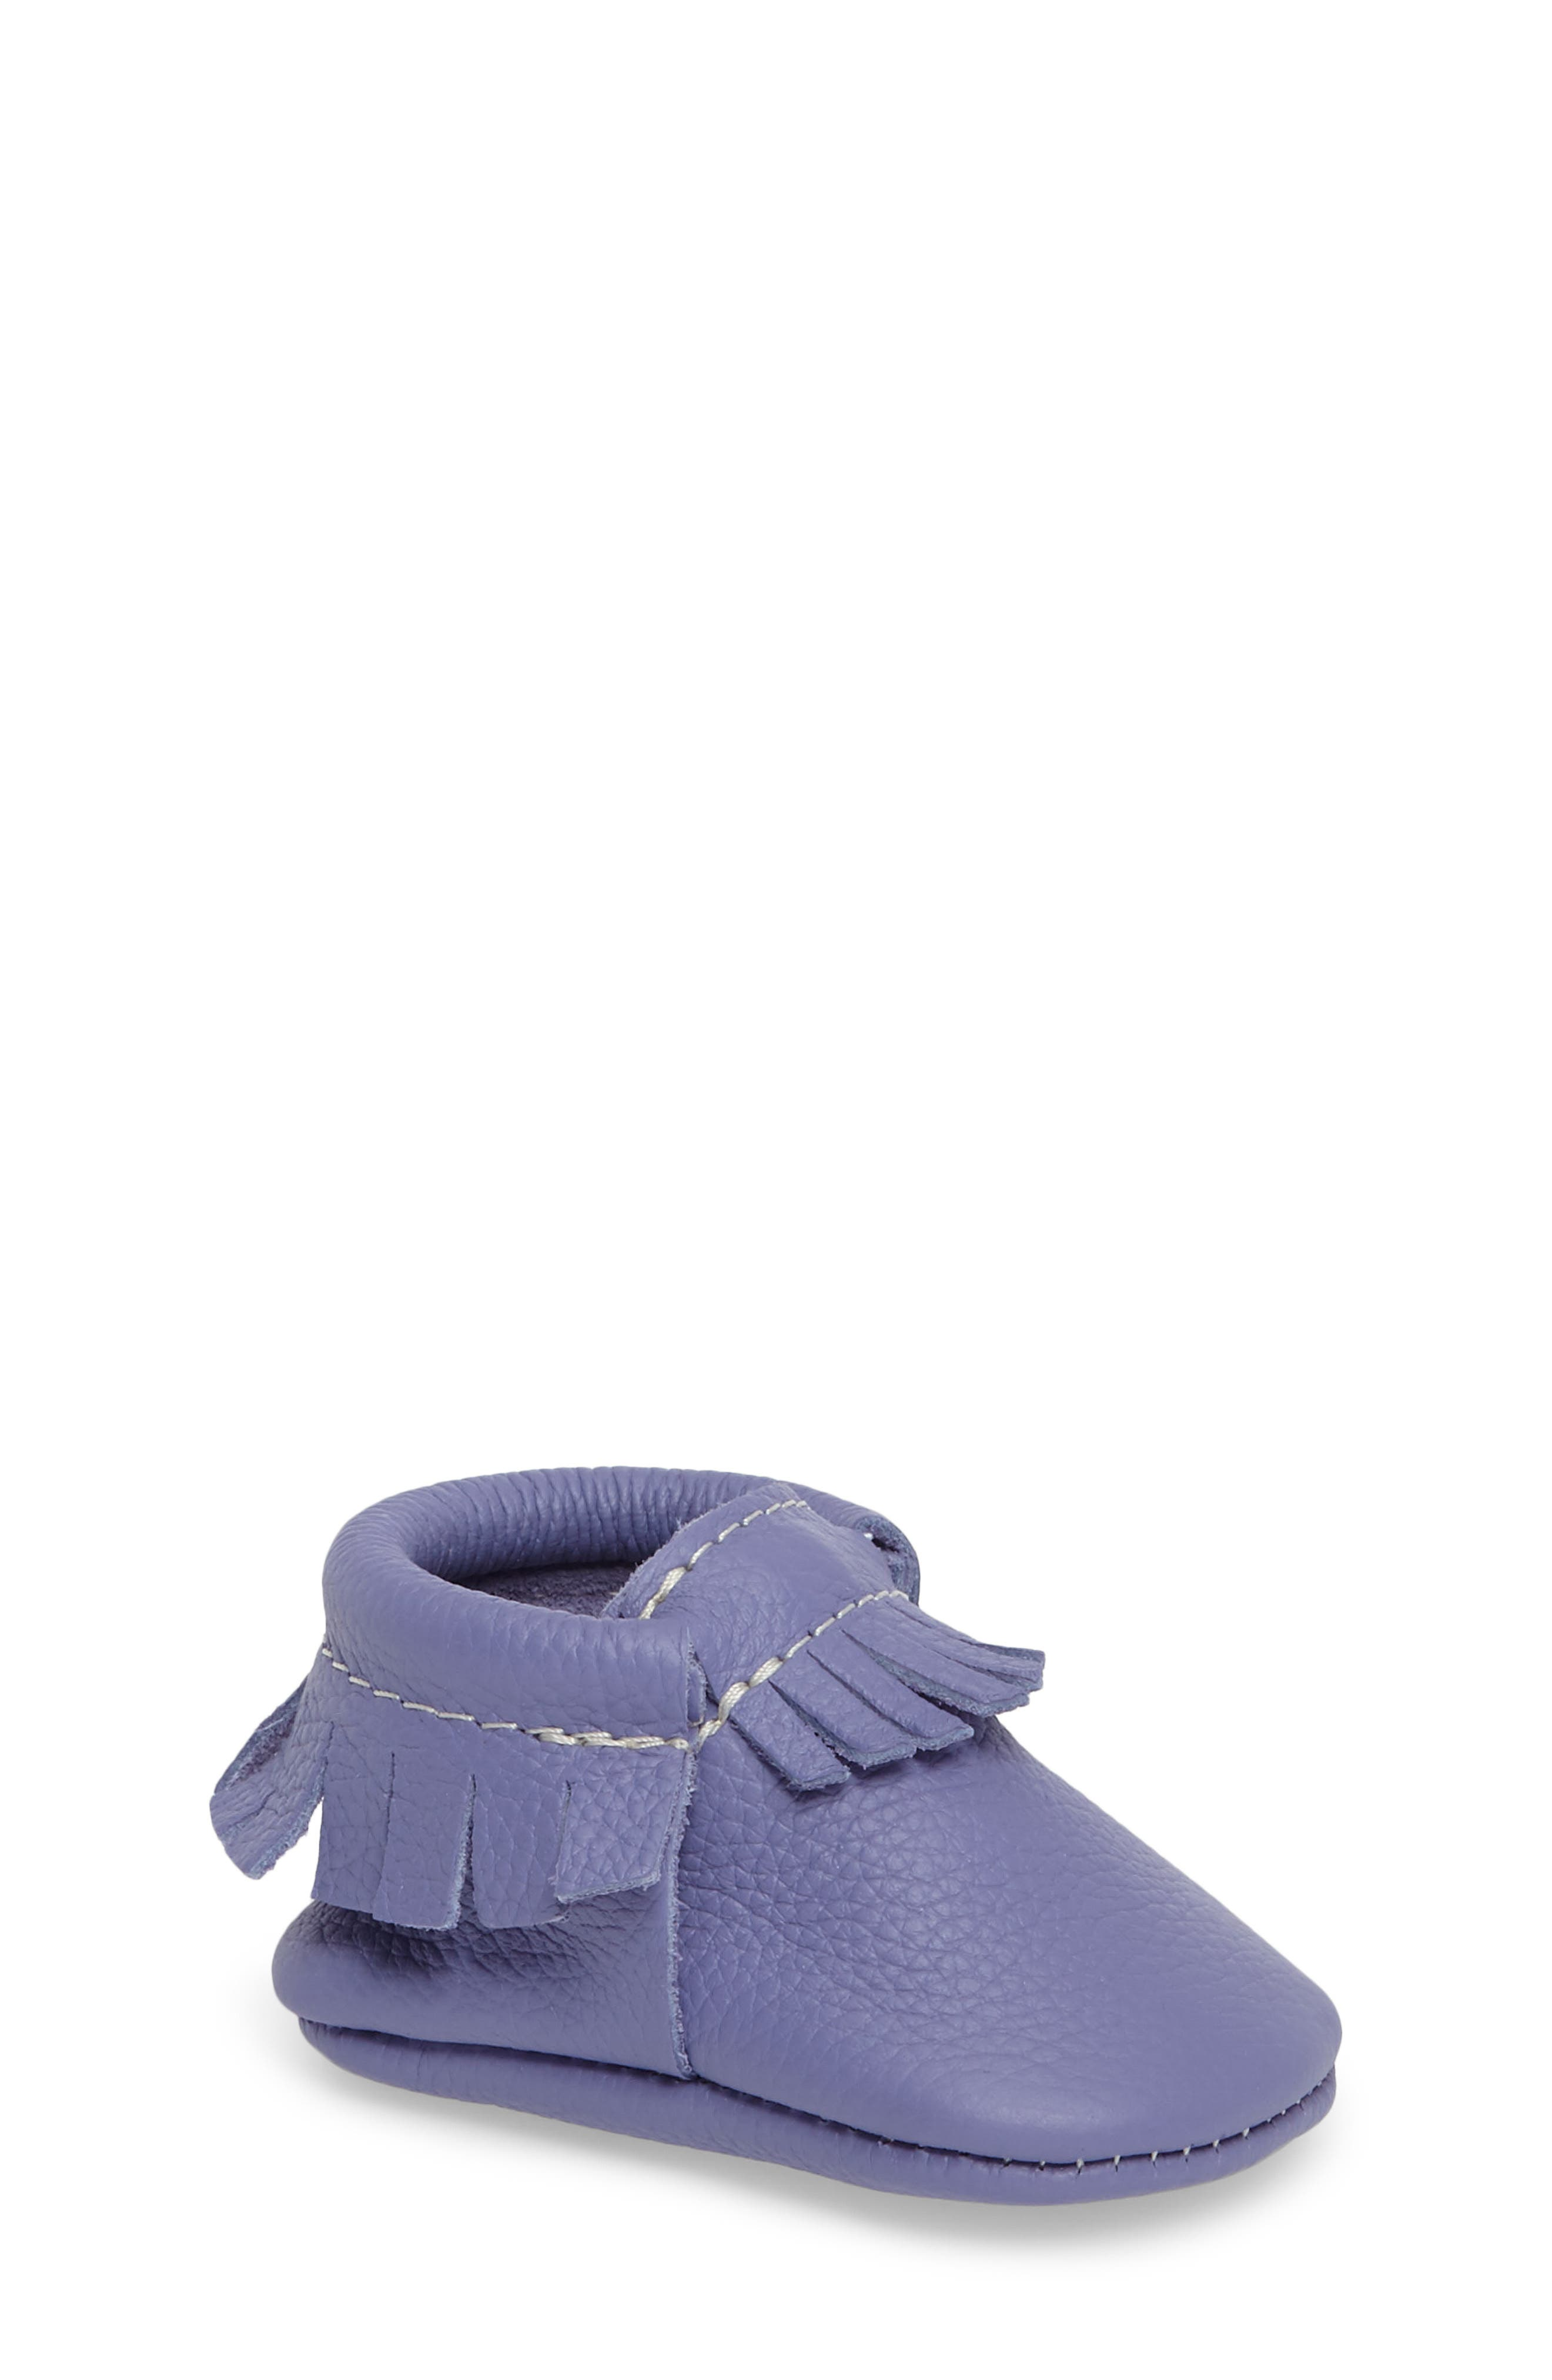 Classic Moccasin,                         Main,                         color, Lilac